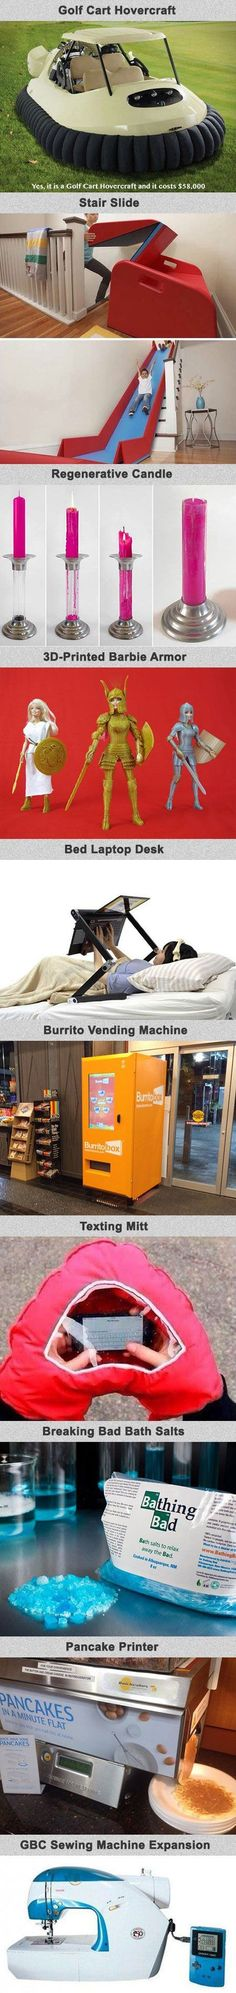 awesome 10 Bizarre Gadgets and Random Inventions You Won't Believe Exist - www.top-gadgets.xyz